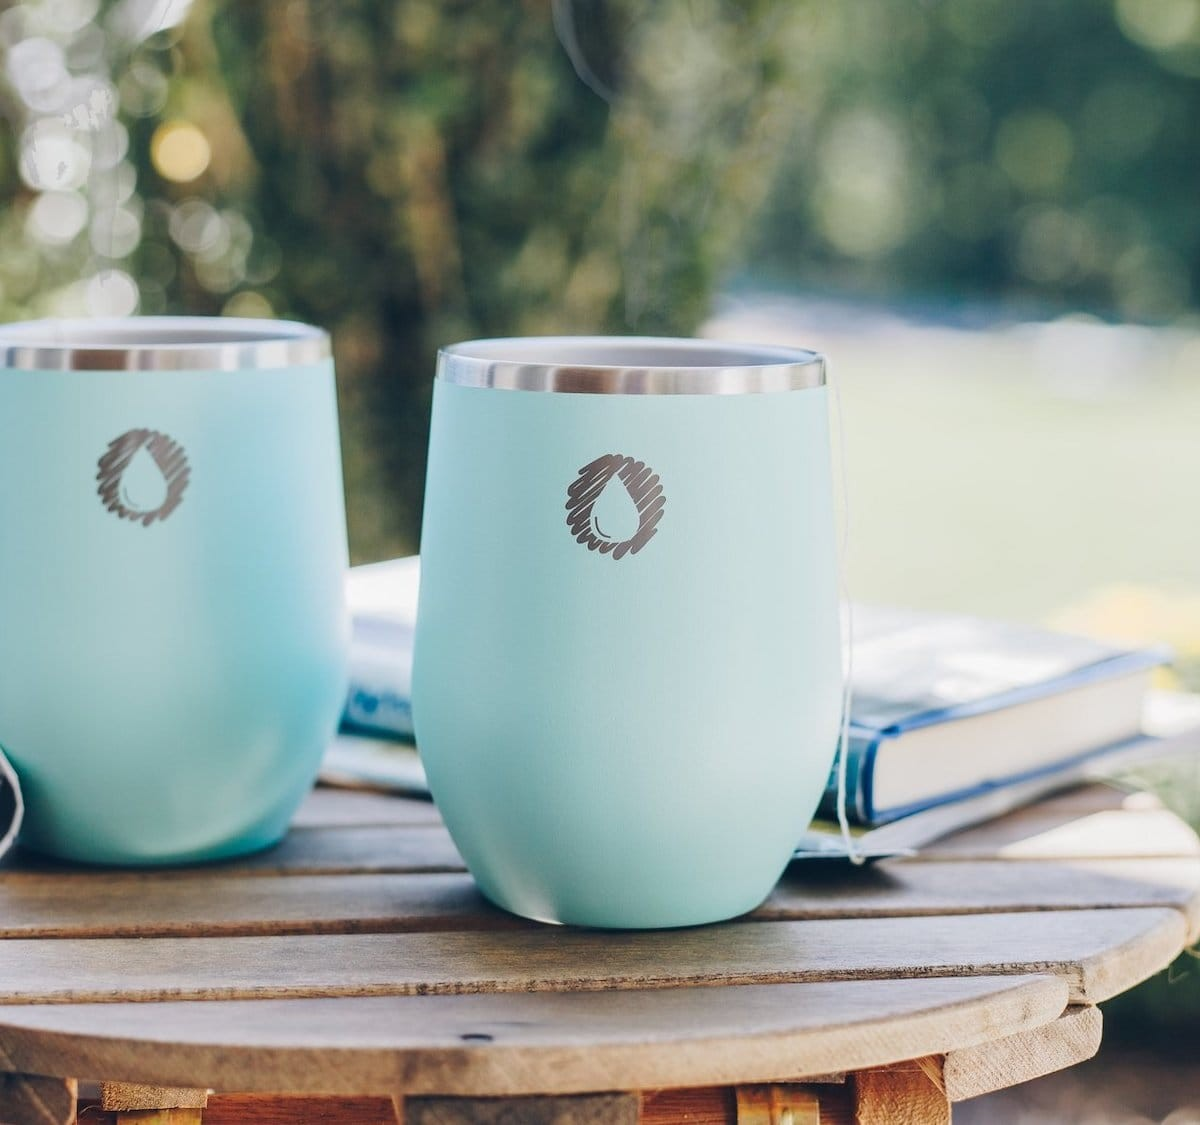 The Pure Collective Stainless Tumblers are virtually unbreakable and built to last